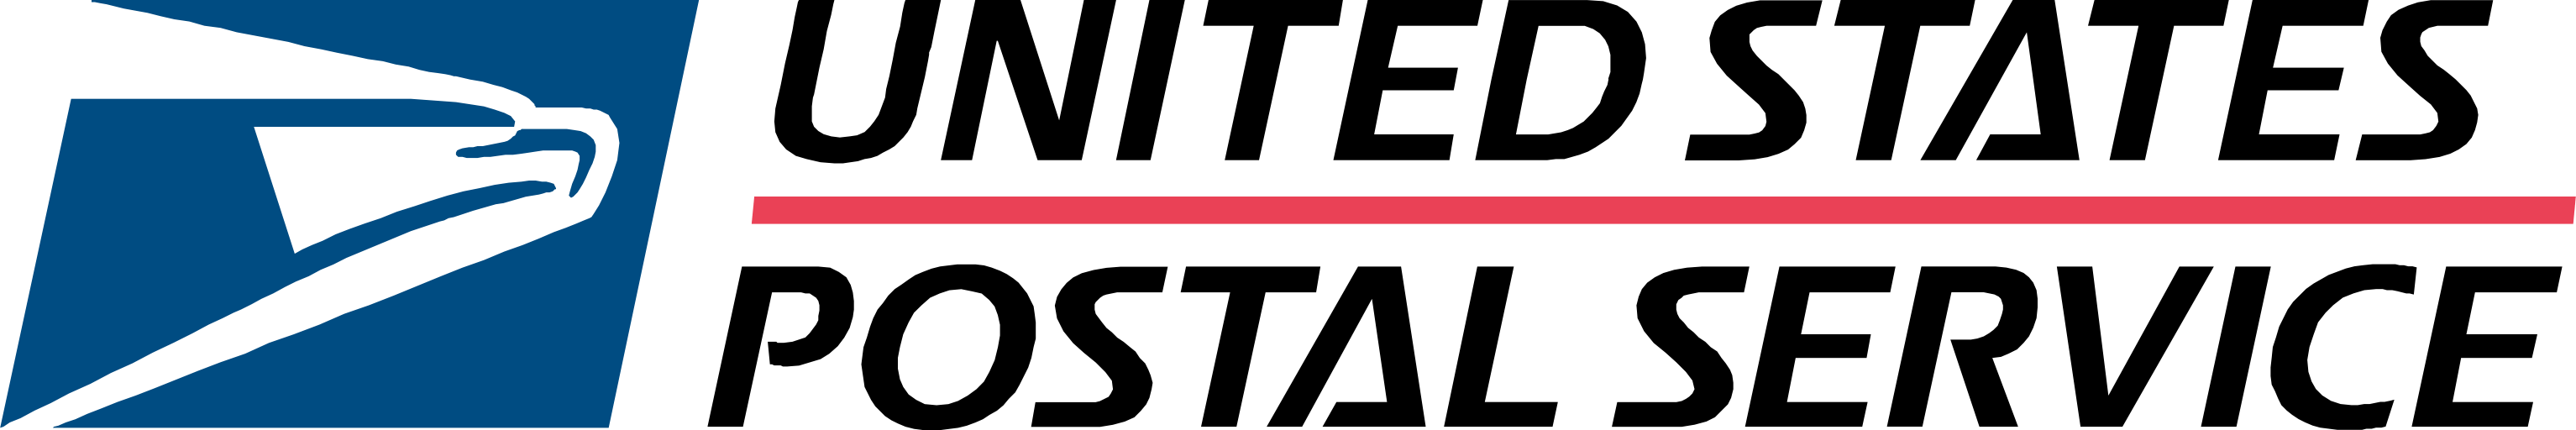 United States Postal Services Usps Logo Transparent Png Stickpng